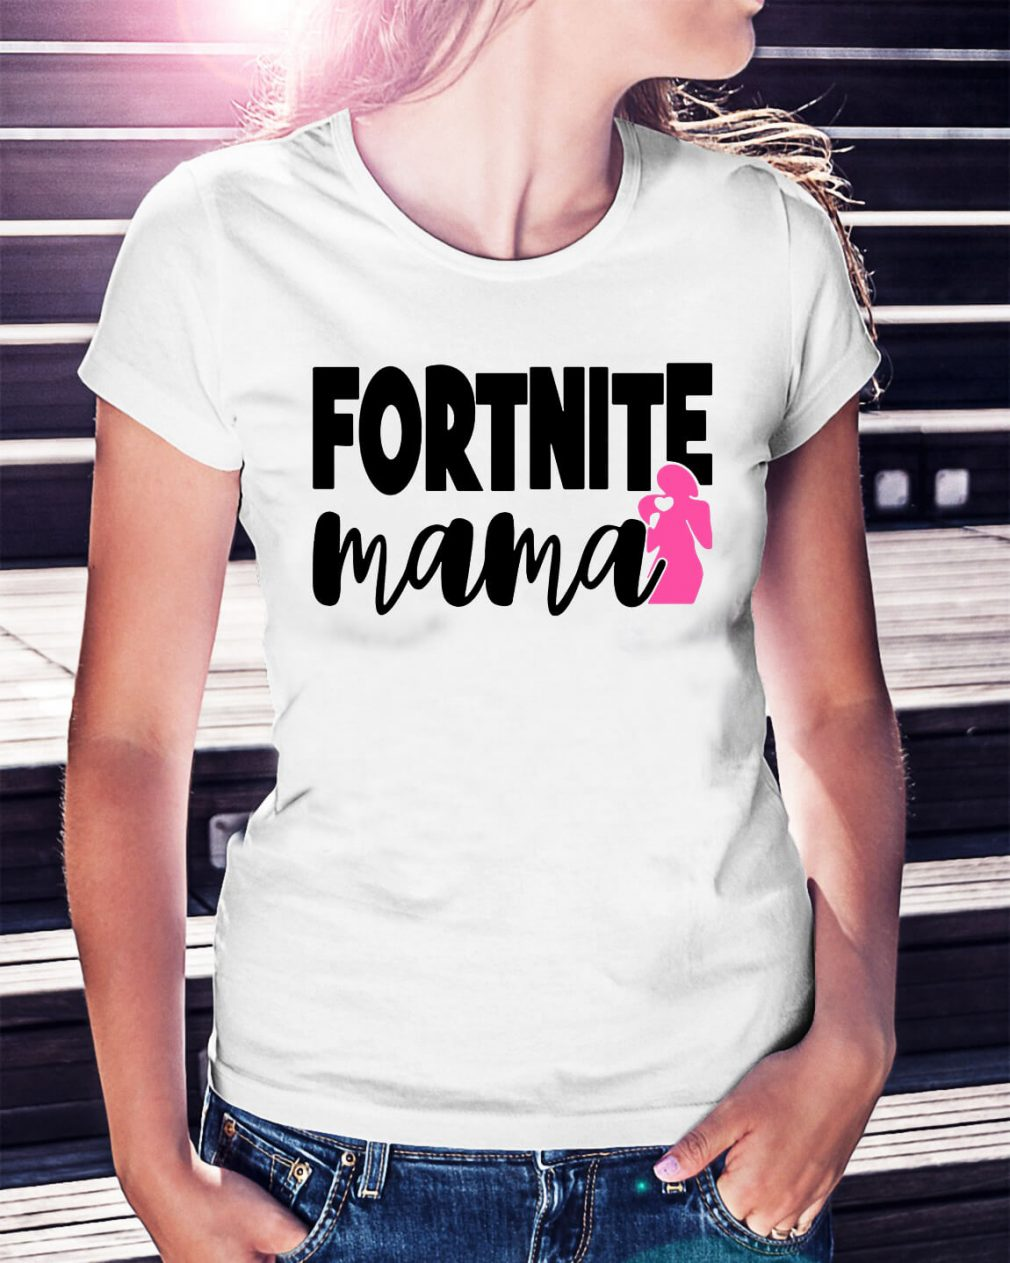 Fortnite mama shirt